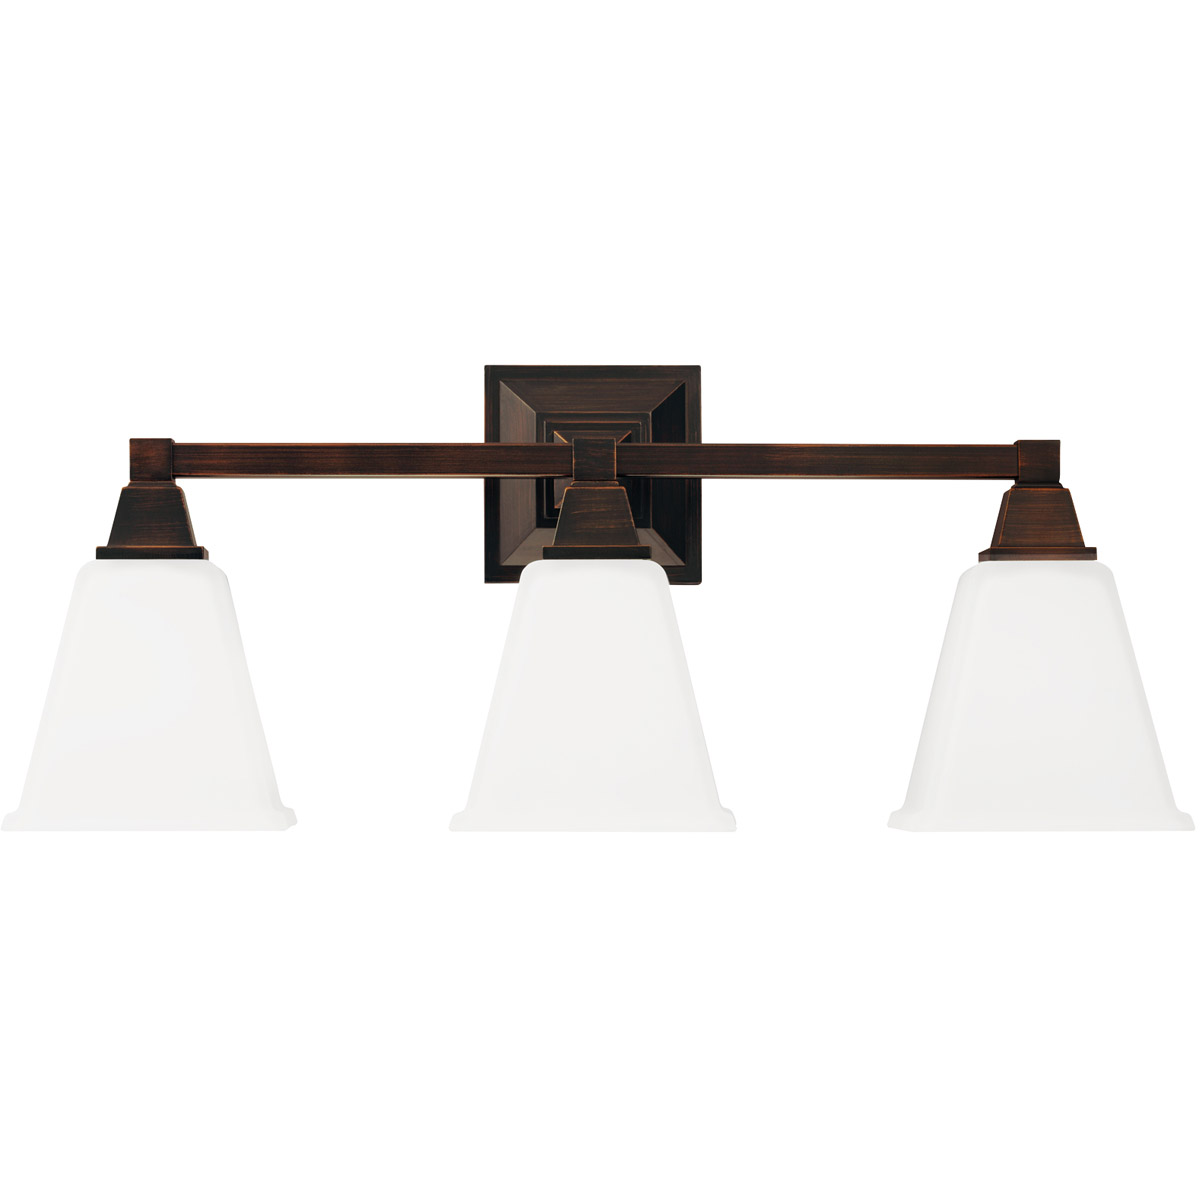 Sea Gull Denhelm 3 Light Bath Vanity in Burnt Sienna 4450403-710 photo